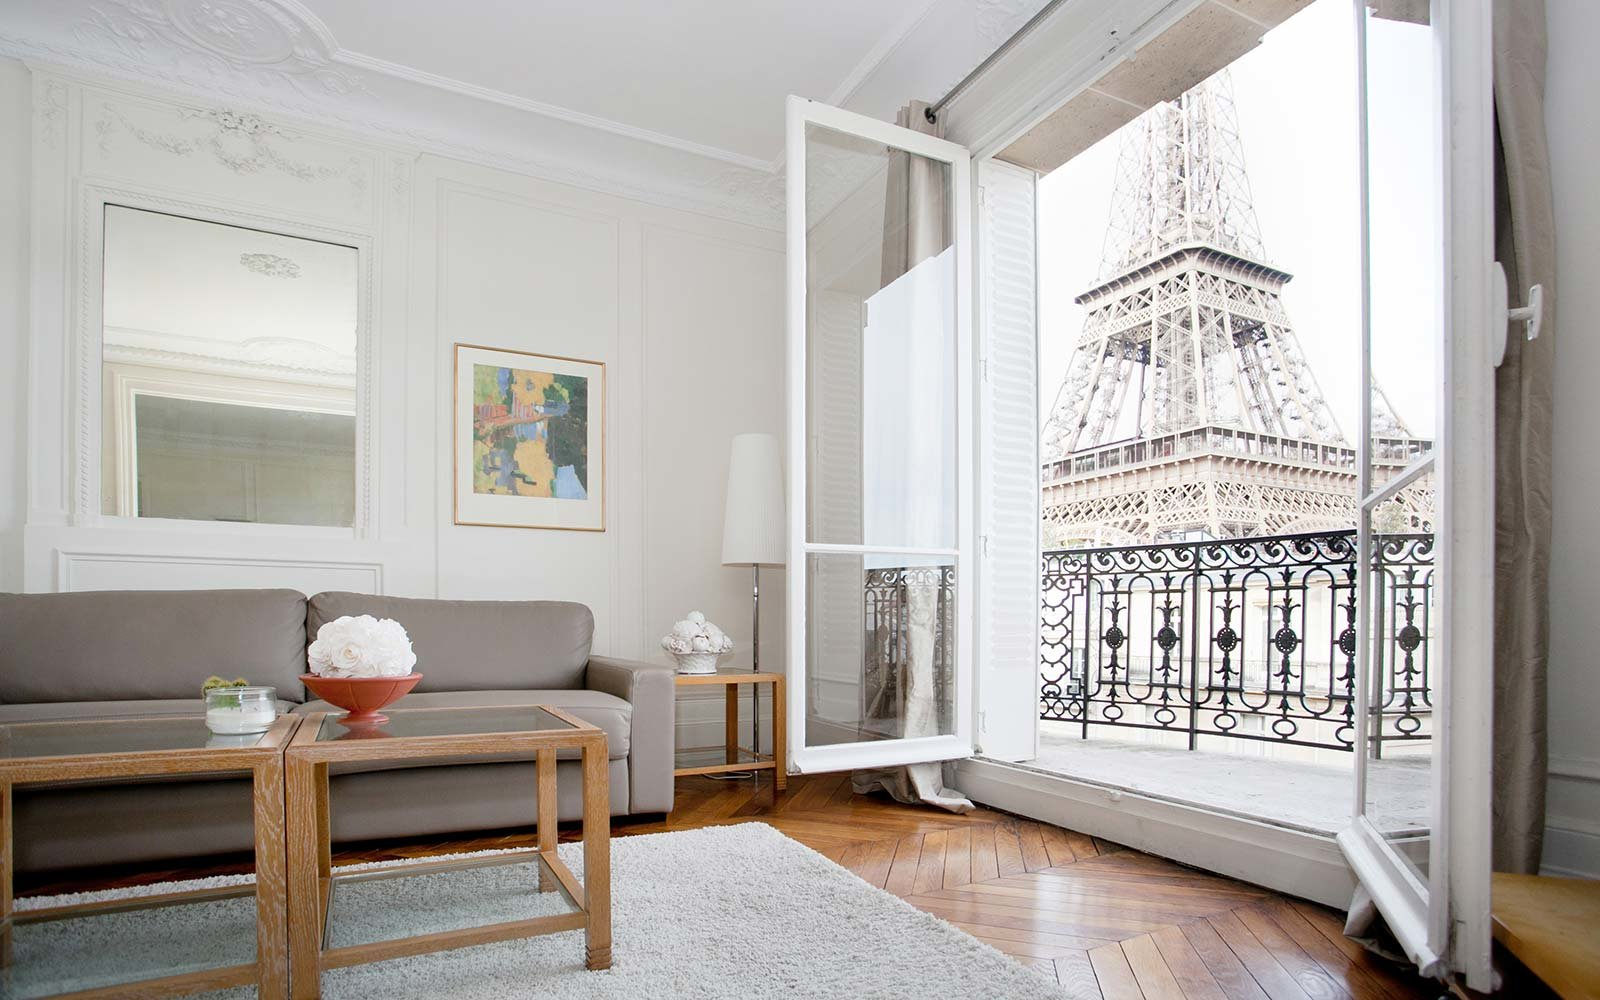 paris france airbnb rental apartment eiffel tower